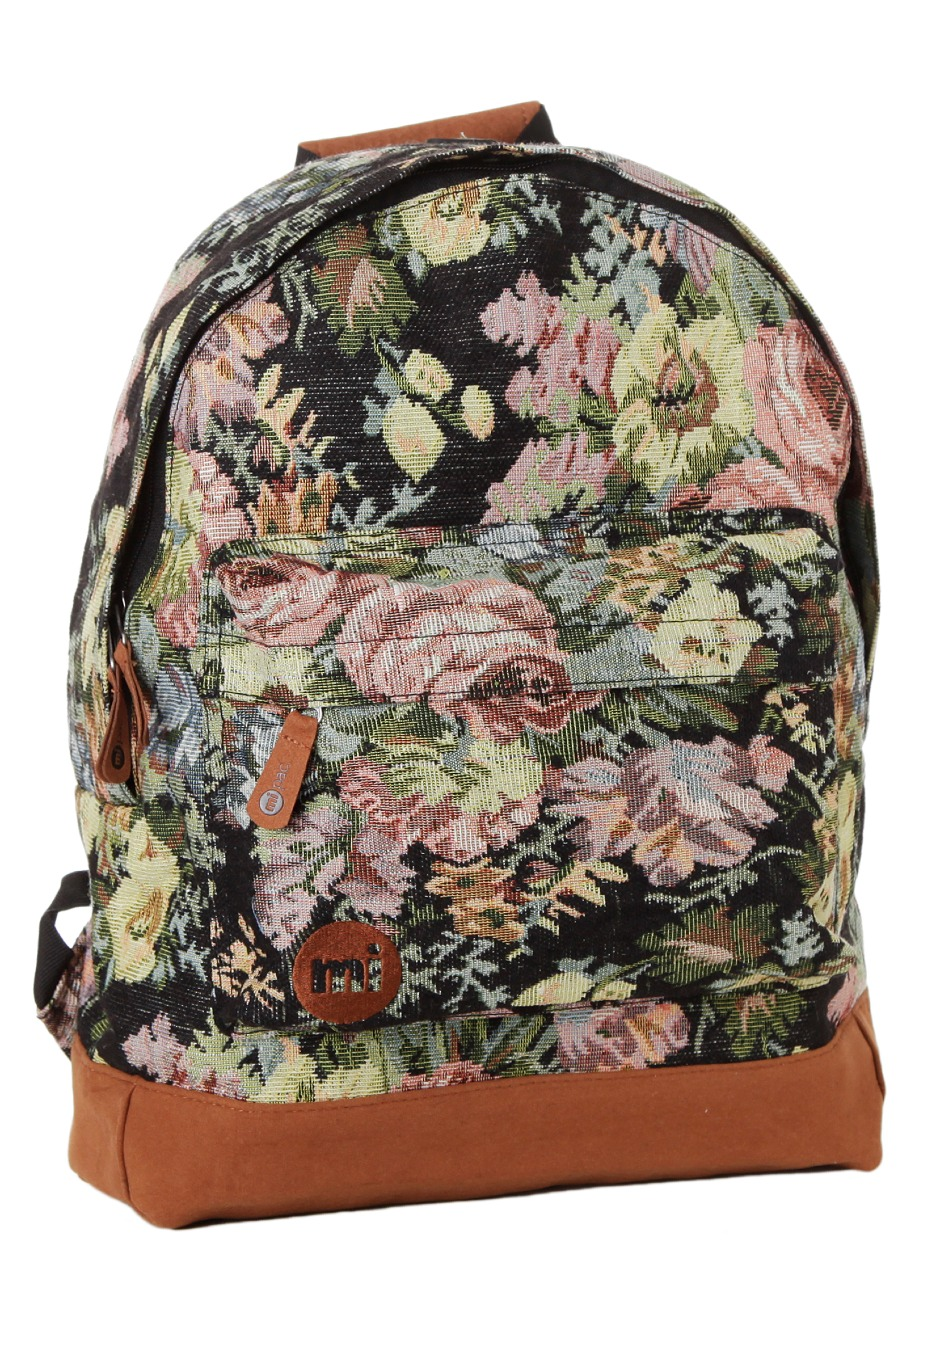 57a05fd598f5 Mi-Pac - Tapestry - Backpack - Streetwear Shop - Impericon.com US